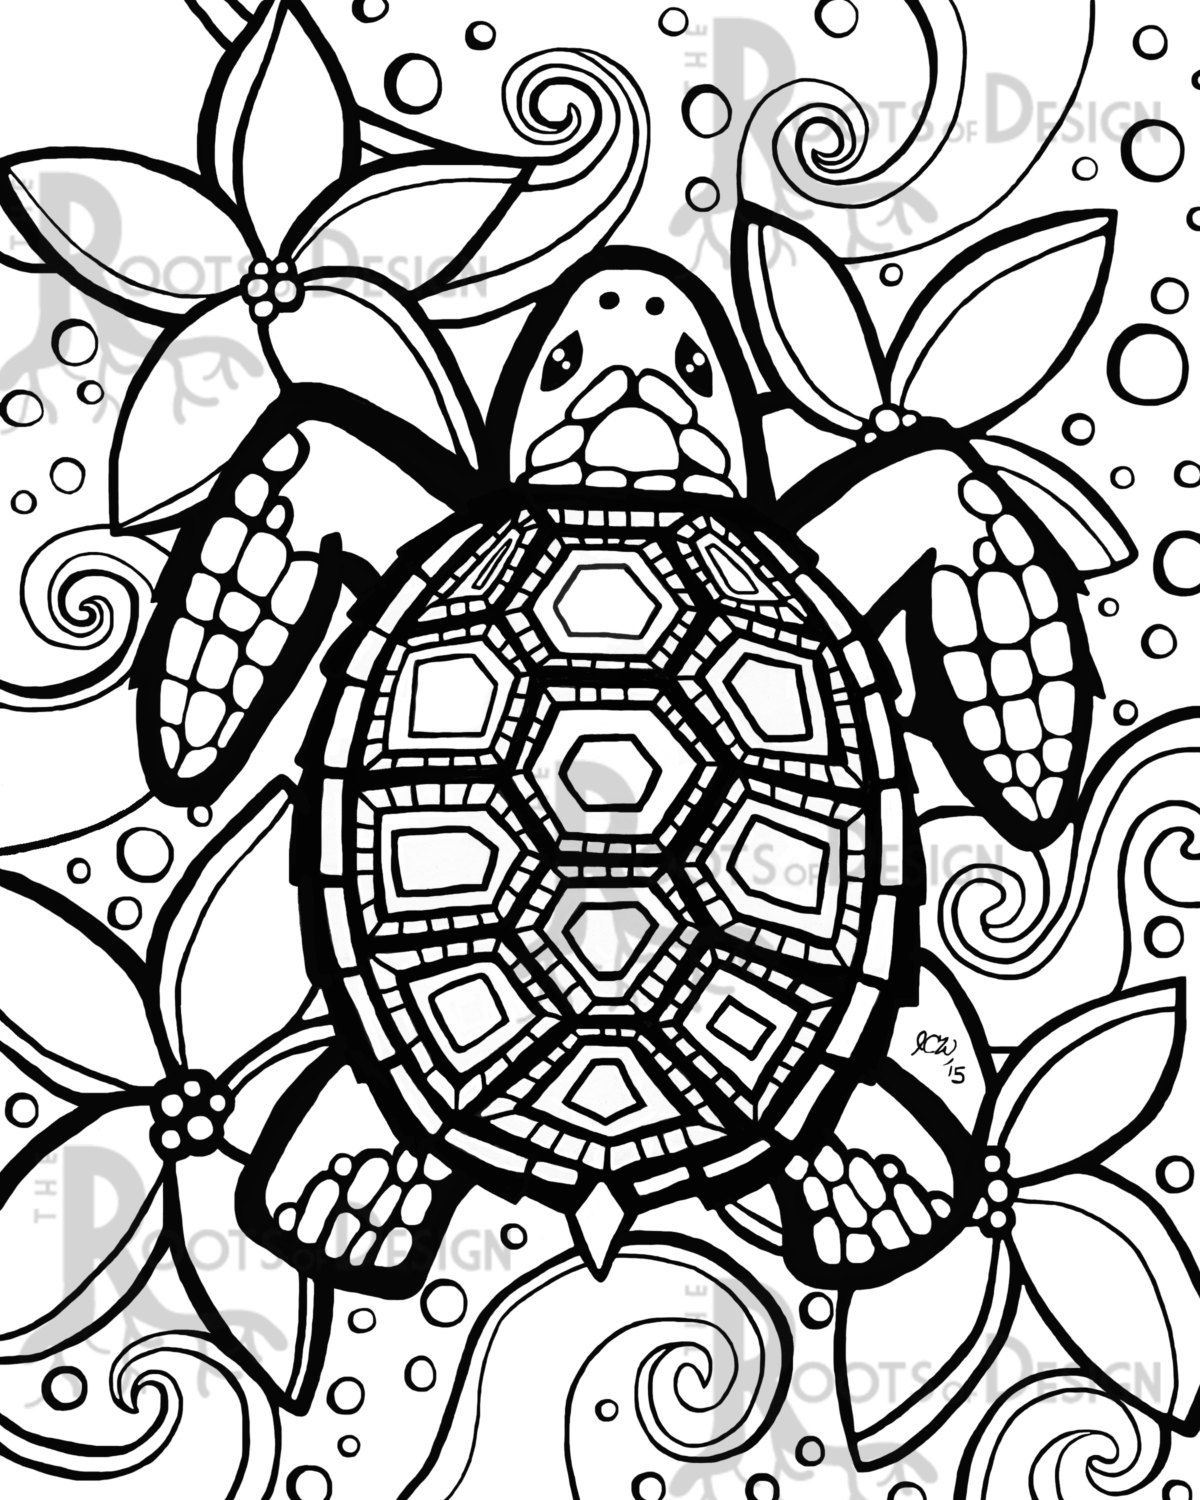 turtle coloring pages google search - Turtle Coloring Pages For Adults